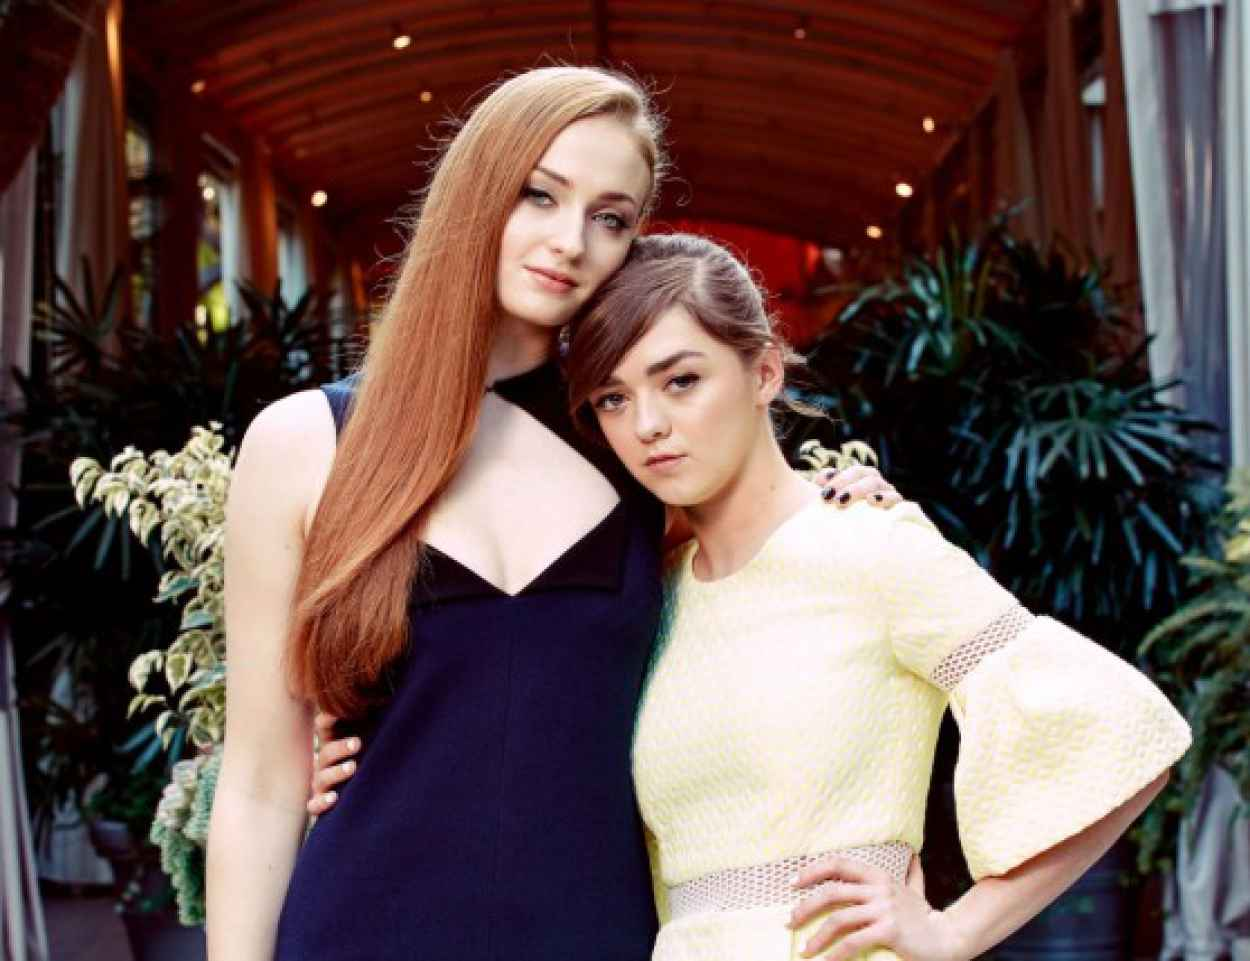 Sophie Turner and Maisie Williams - The New York Times Photoshoot, March 2015-1